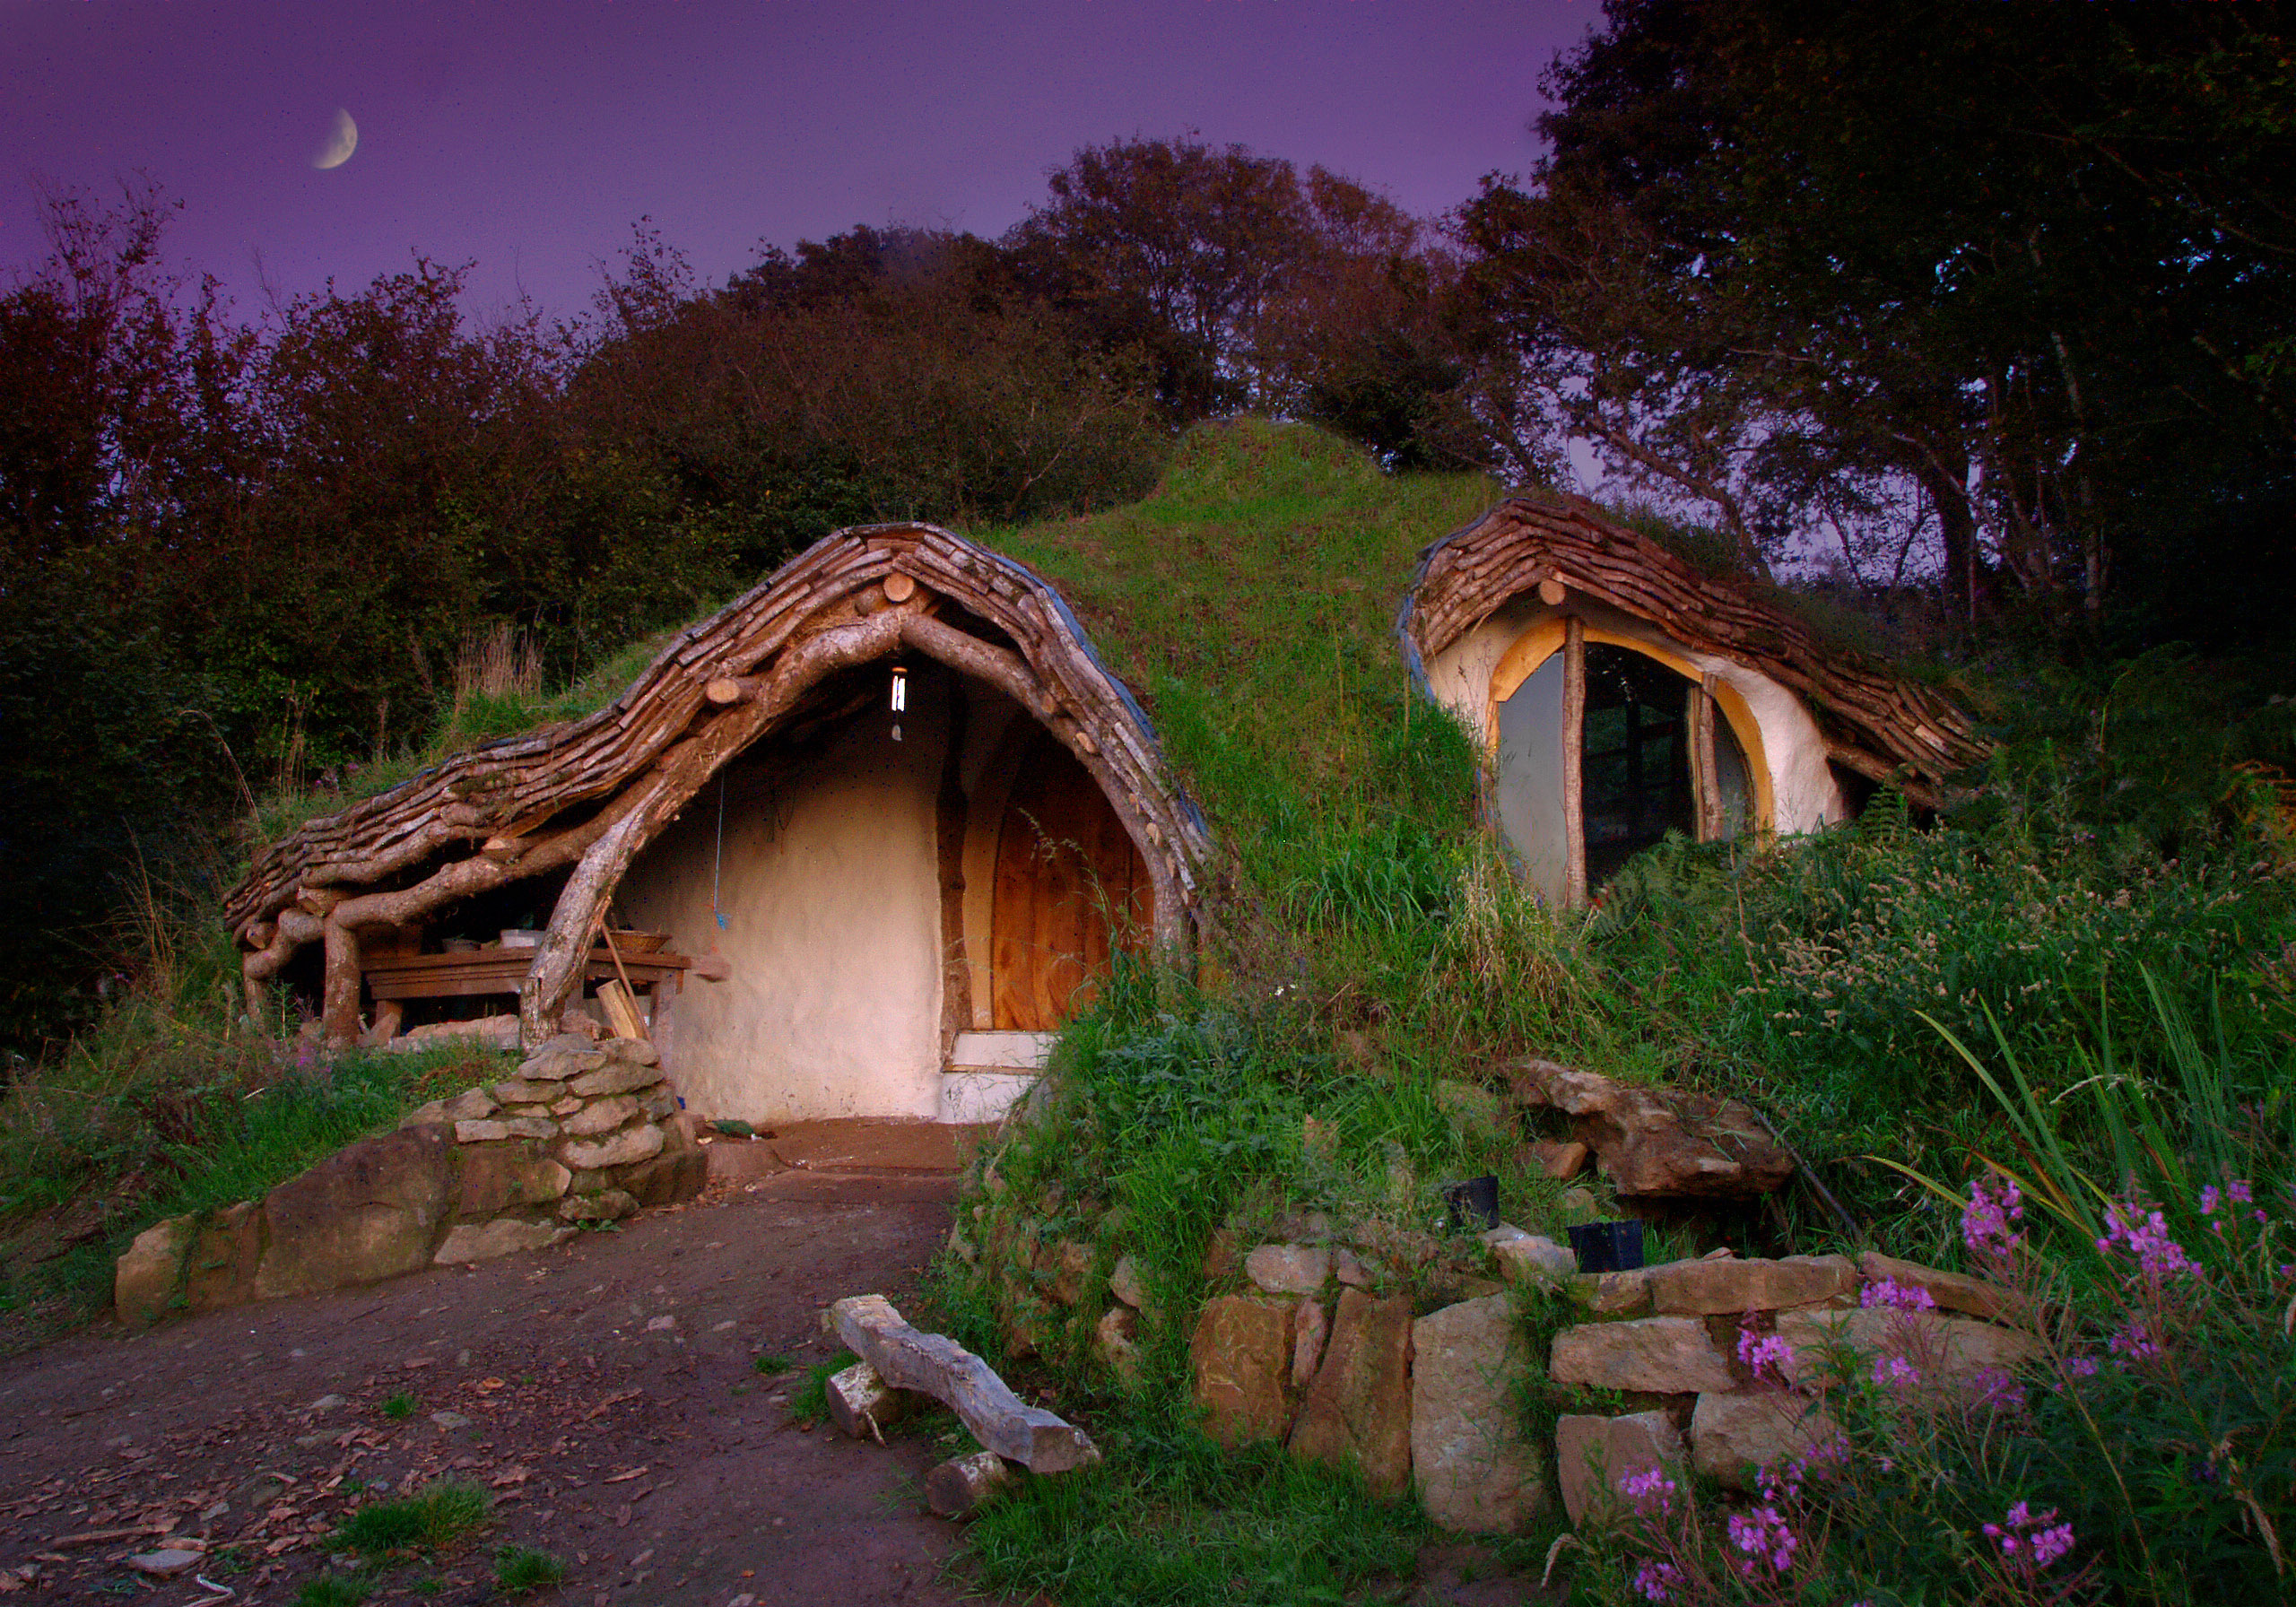 A hobbit burrow if I ever saw one